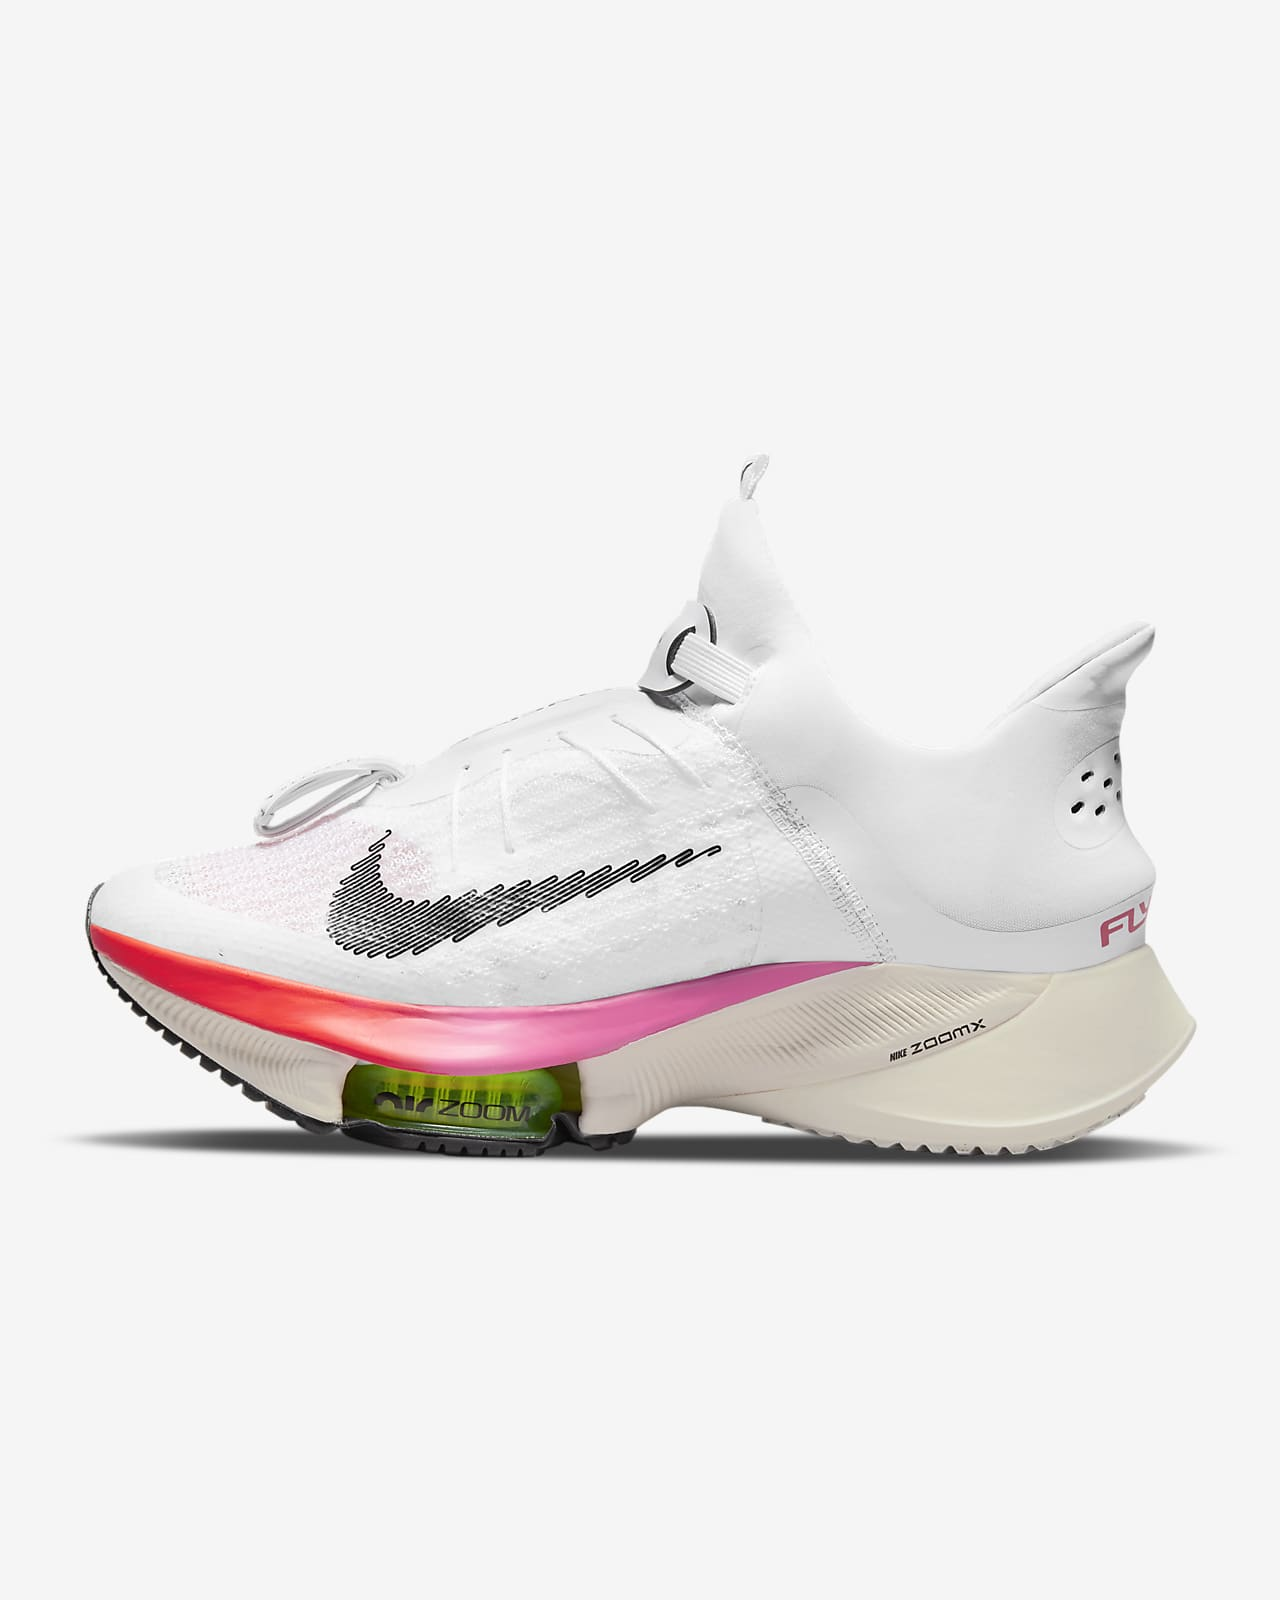 Nike Air Zoom Tempo Next% FlyEase Women's Easy On/Off Road Running Shoes